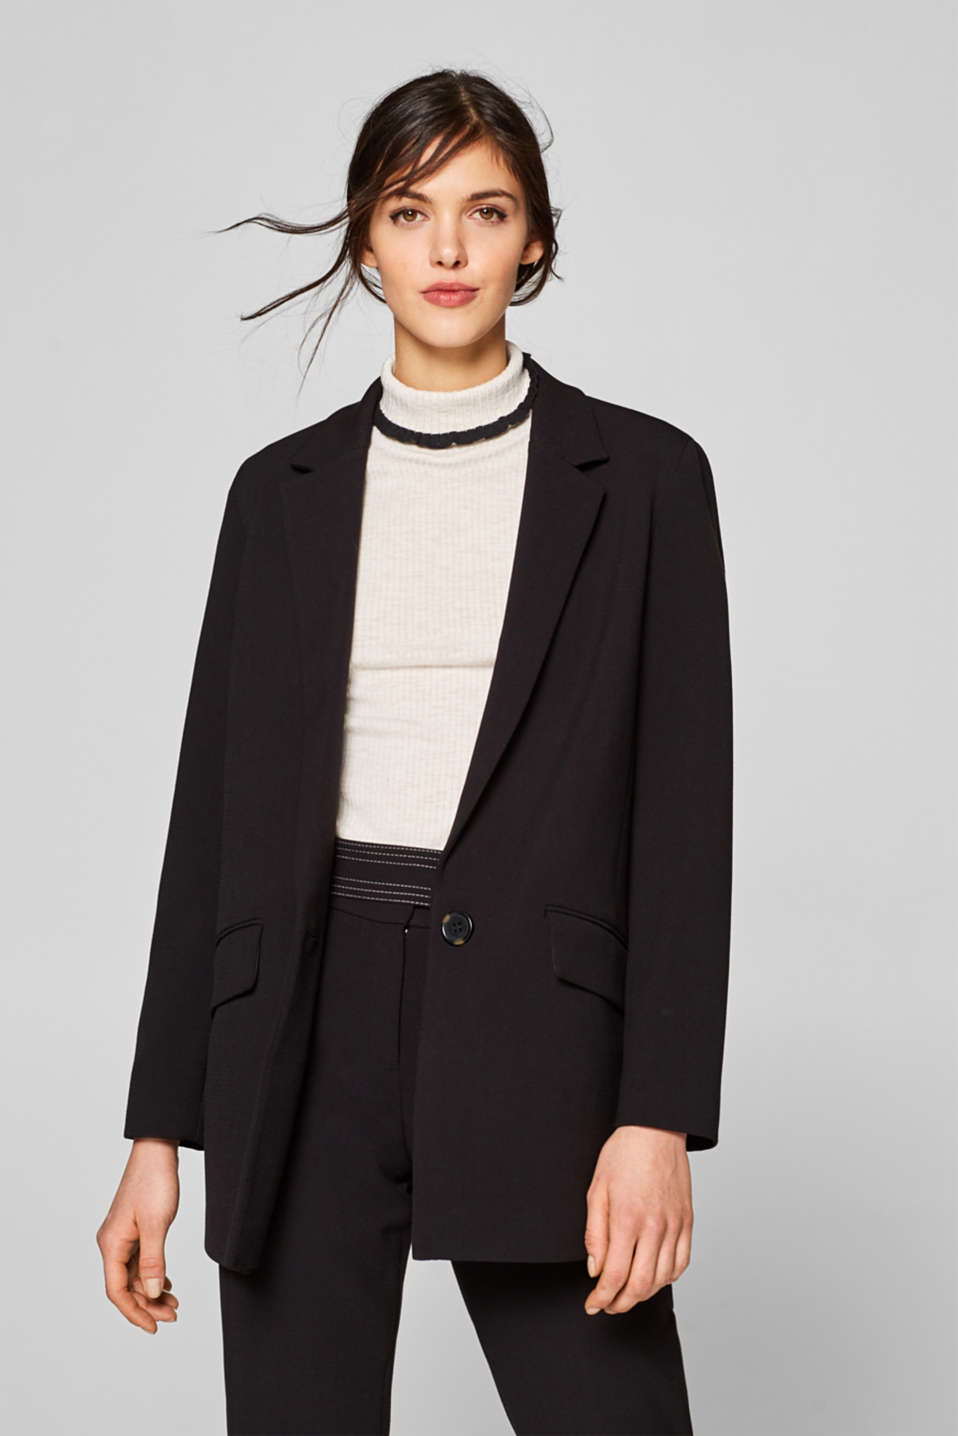 Esprit - Stretch blazer in a casual, long design